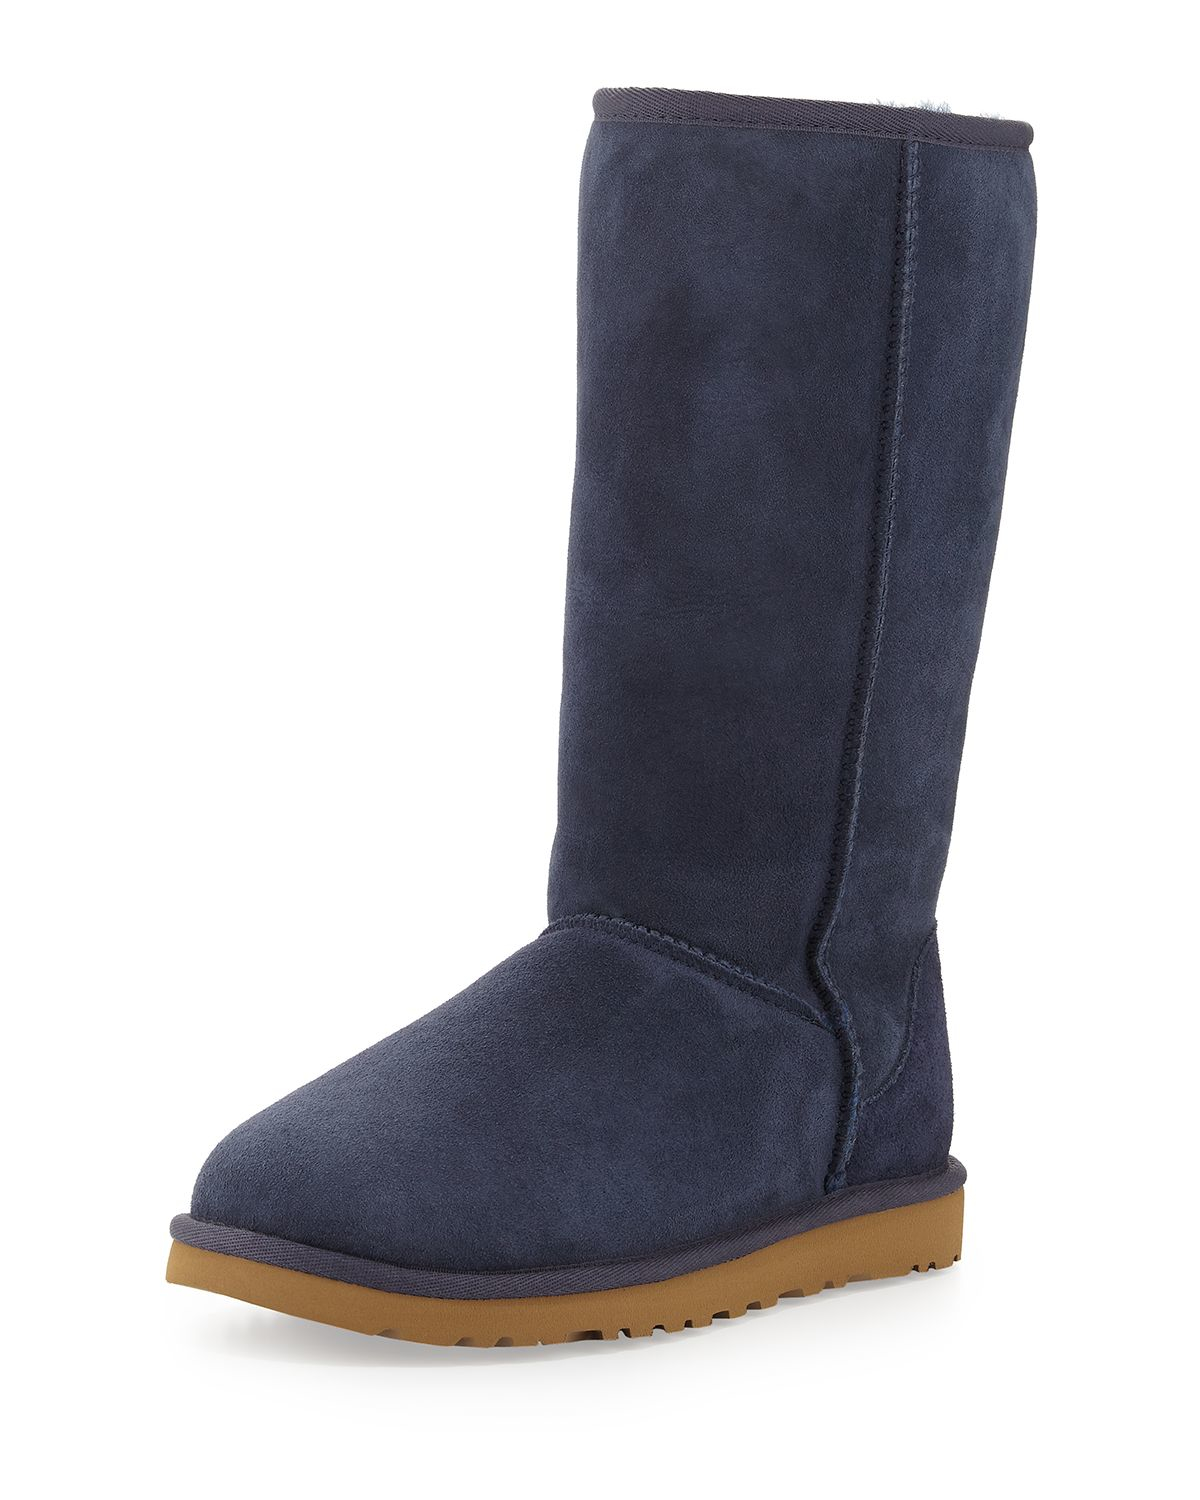 72ed2cac43c Tall Navy Ugg Boots | Mindwise